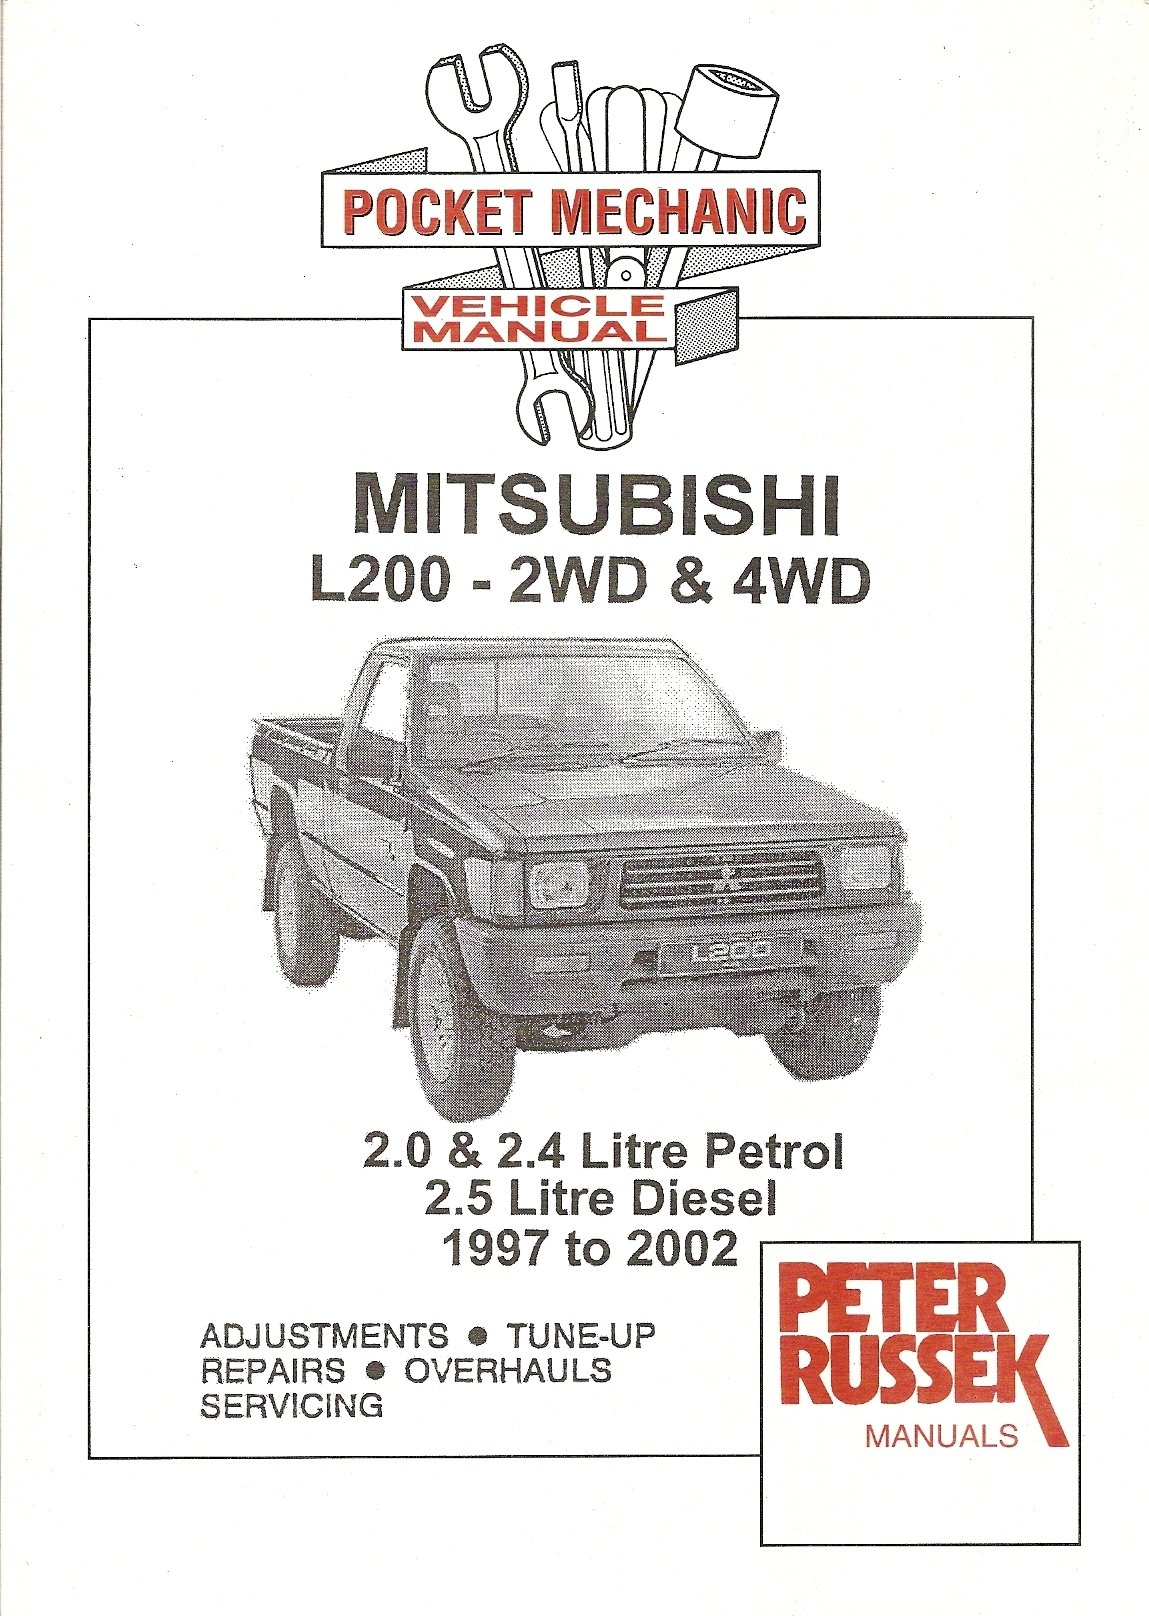 Pocket Mechanic Mitsubishi L200 2wd 4wd 1997 2002 Manual Amazon Wiring Diagram For Peter Russek Publications Ltd 9781898780519 Books